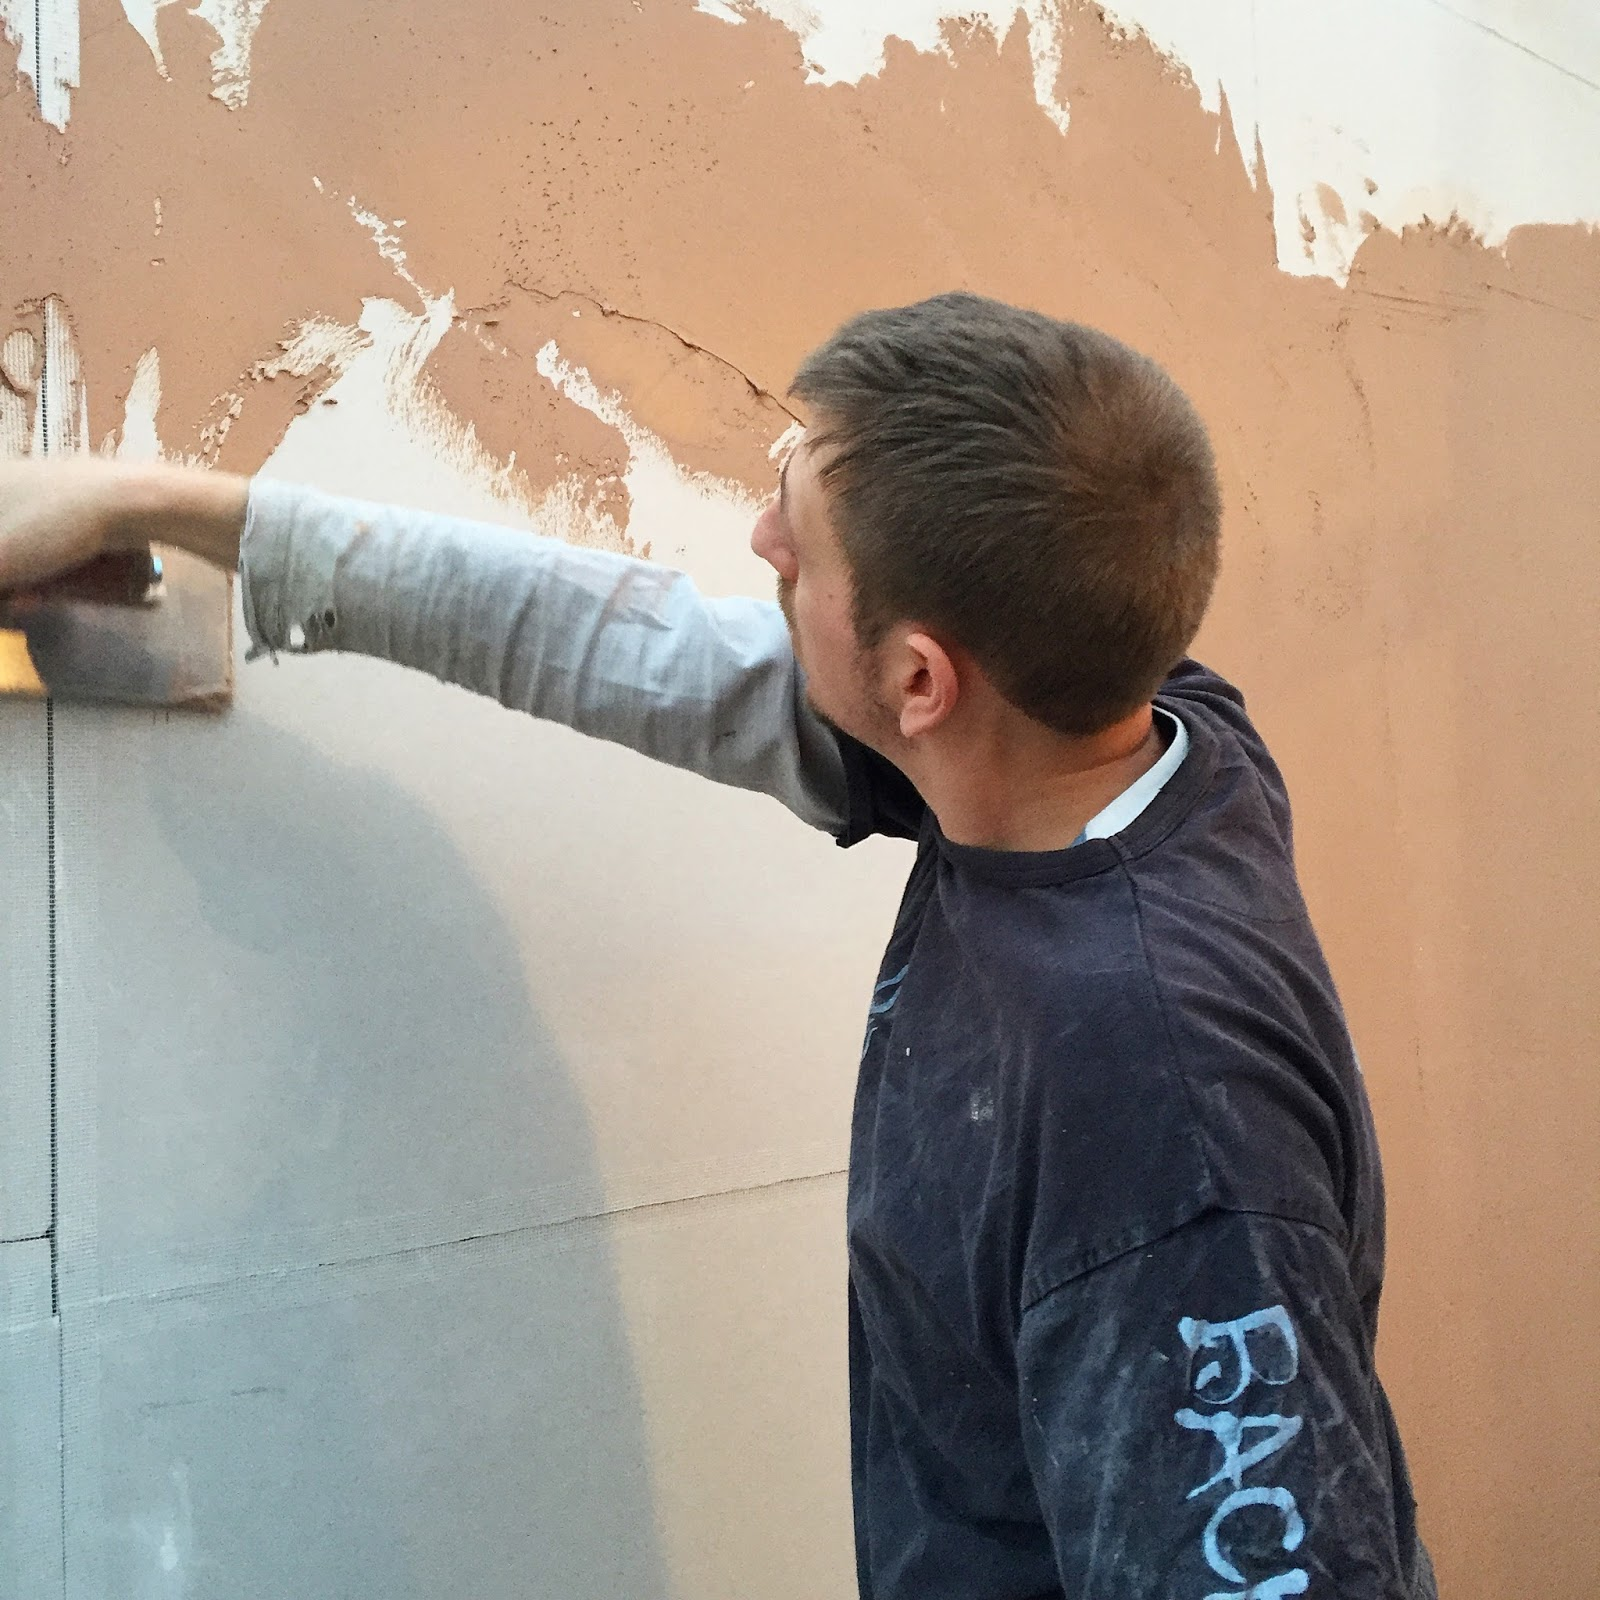 Save Money on Plastering: Take a Course - Kezzabeth | DIY ...